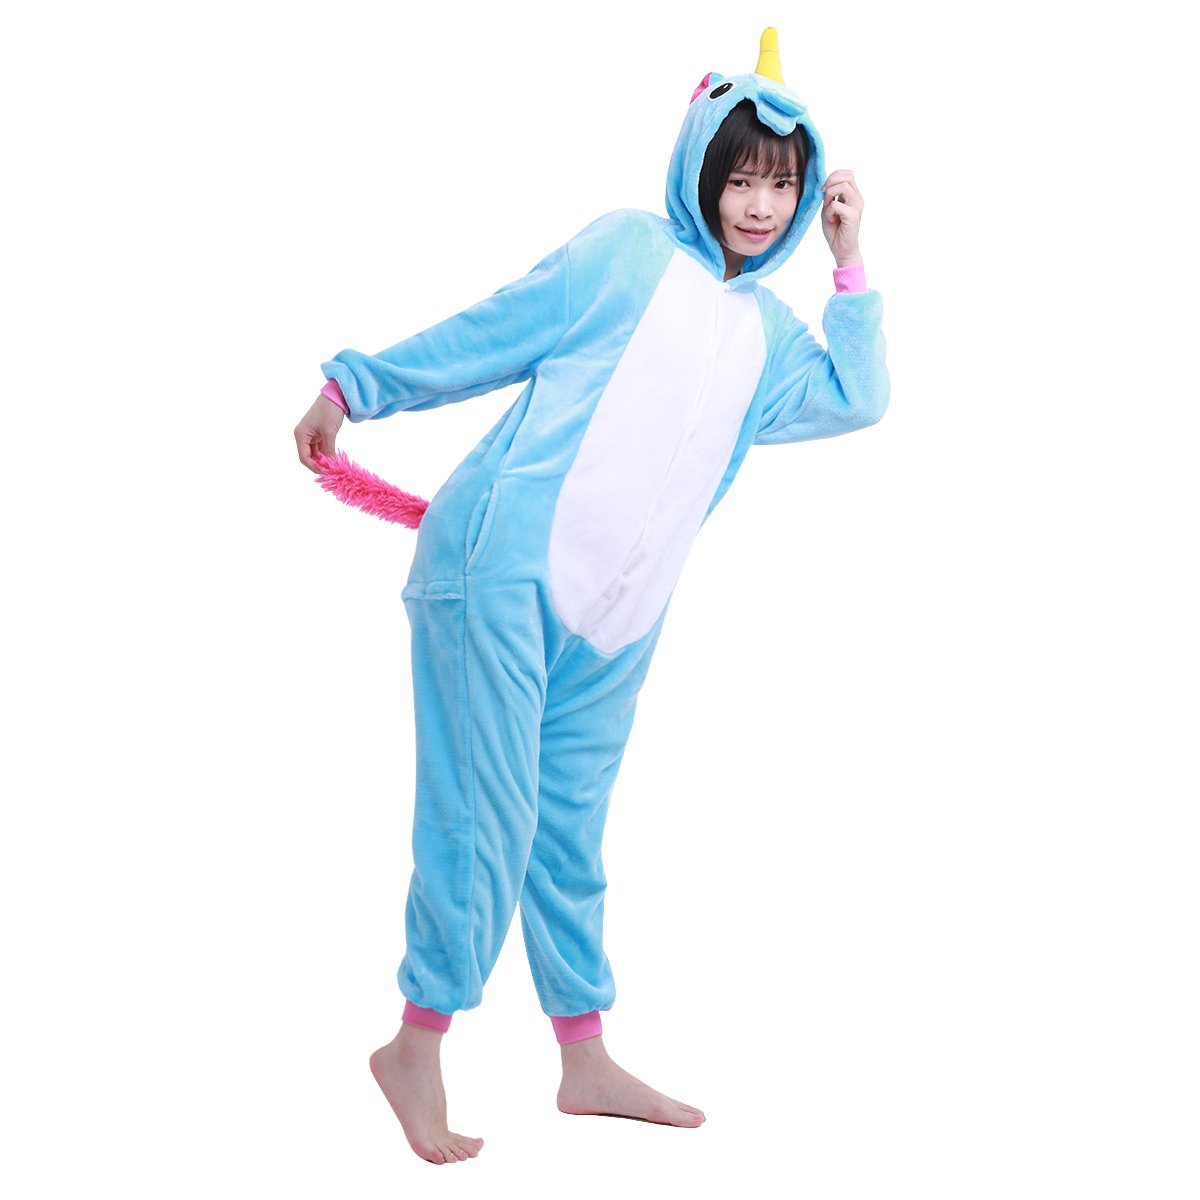 Amazon.com: iEFiEL Kids Boy Girls Cute Unicorn Pajamas Costume Animal One-Piece Sleepwear Cosplay Costume: Clothing